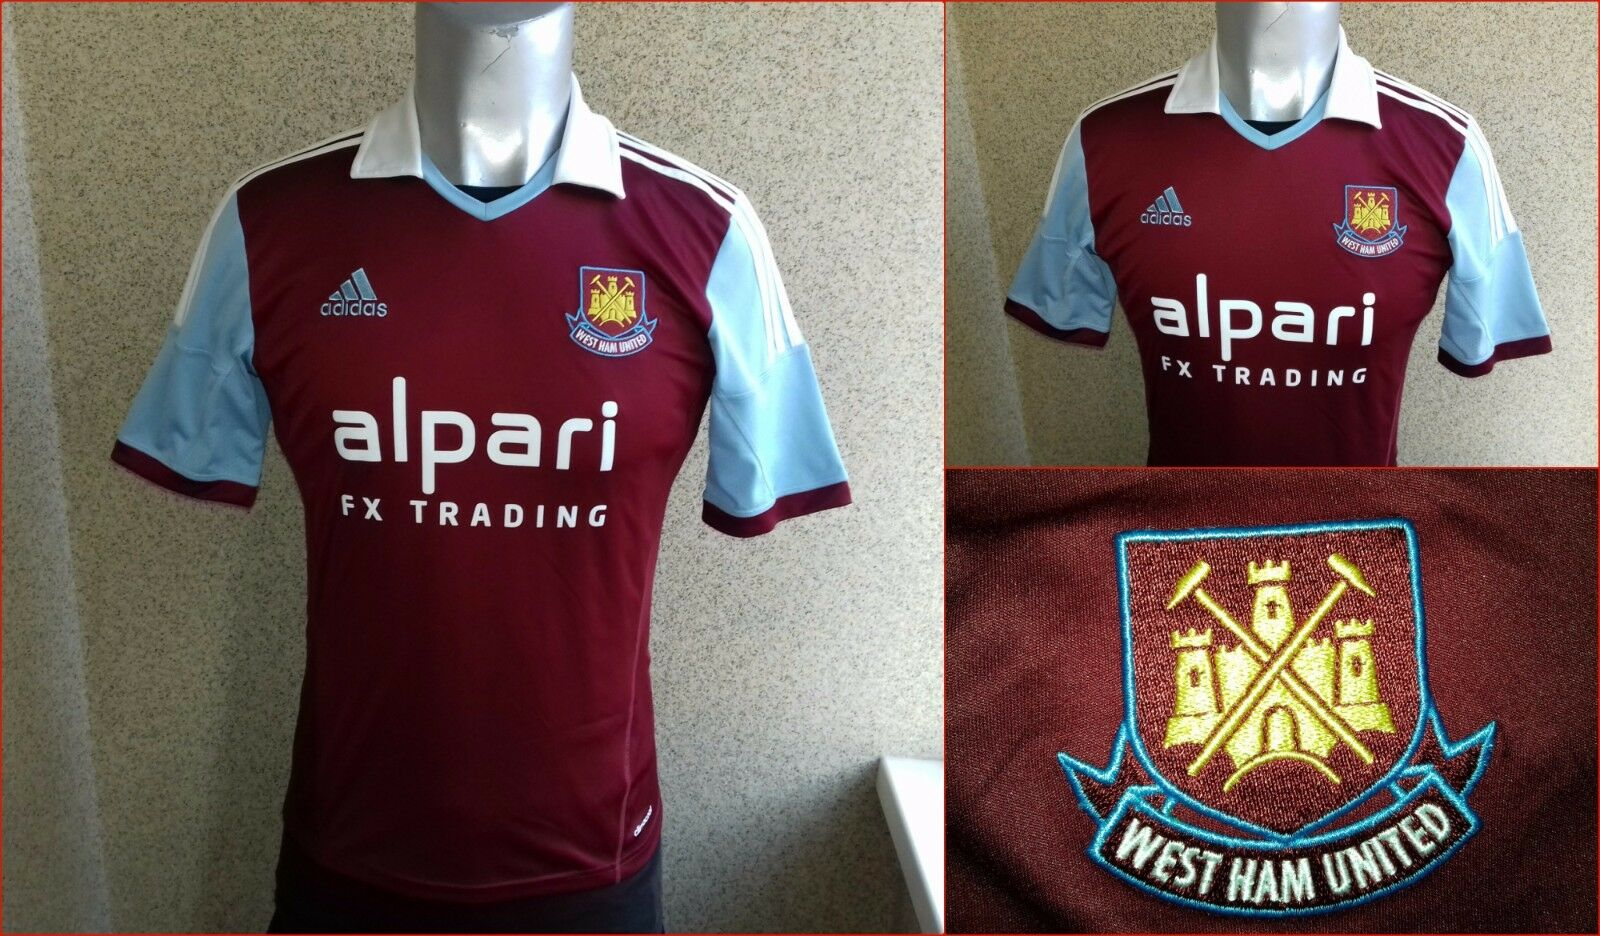 West Ham United 2013 2014 England  Home football shirt S Jersey Adidas